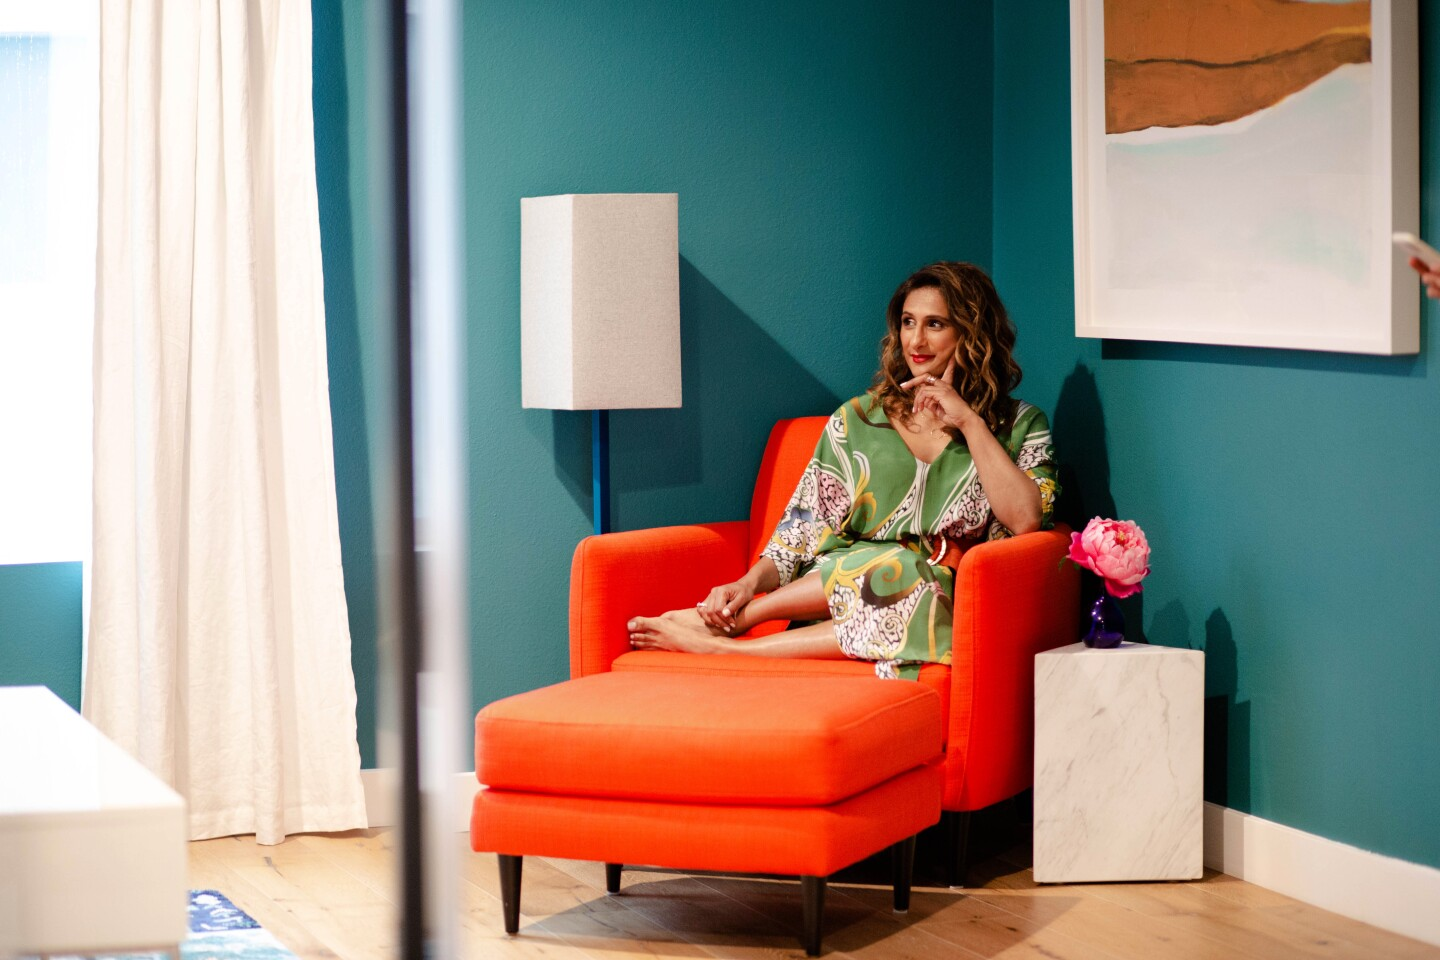 Color - and lots of it - was the goal for actress Sarayu Blue when she converted a guest room in her Studio City home into a personal retreat of sorts. She painted the walls a deep turquoise, anchored one corner with a burnished orange lounge chair, laid down a floral teal rug from Anthropologie and set out vases, which she keeps filled with fresh bouquets. Photographed March 12, 2020. (Jesse Goddard / For The Times)